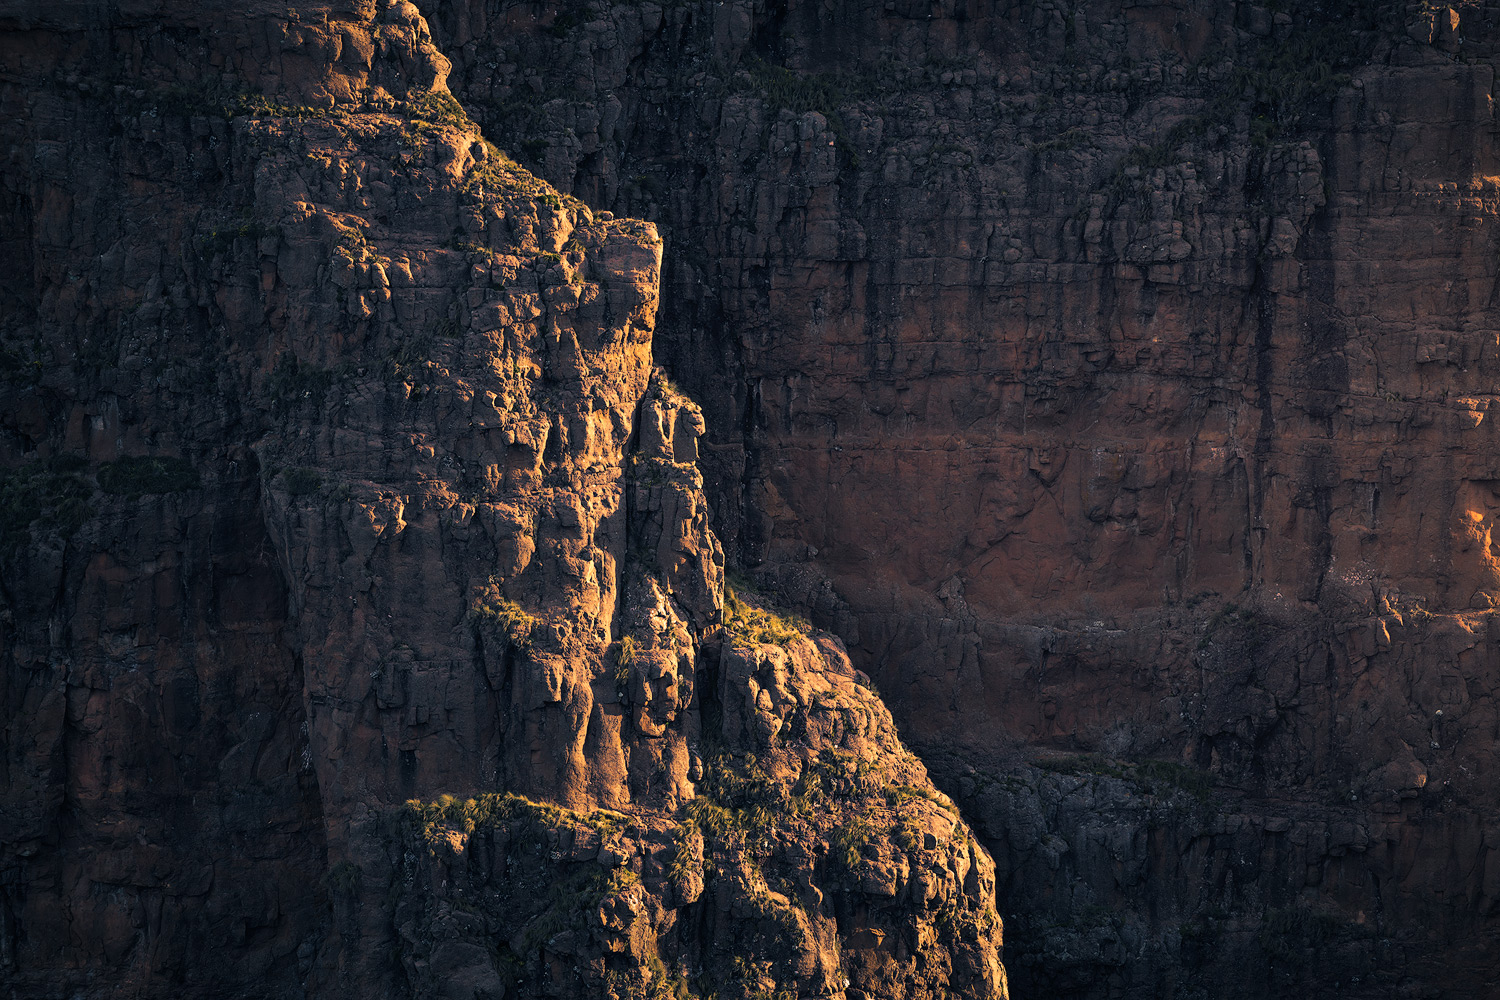 Nikon D850 / 70-200 f4 lens @ 200mm / ISO 200 - f/6.3 - 1/80 sec / circular Polariser. Looking across the drop-off that is Ifidi Pass, the late afternoon light picked out some wonderful detail on the giant Basalt walls.